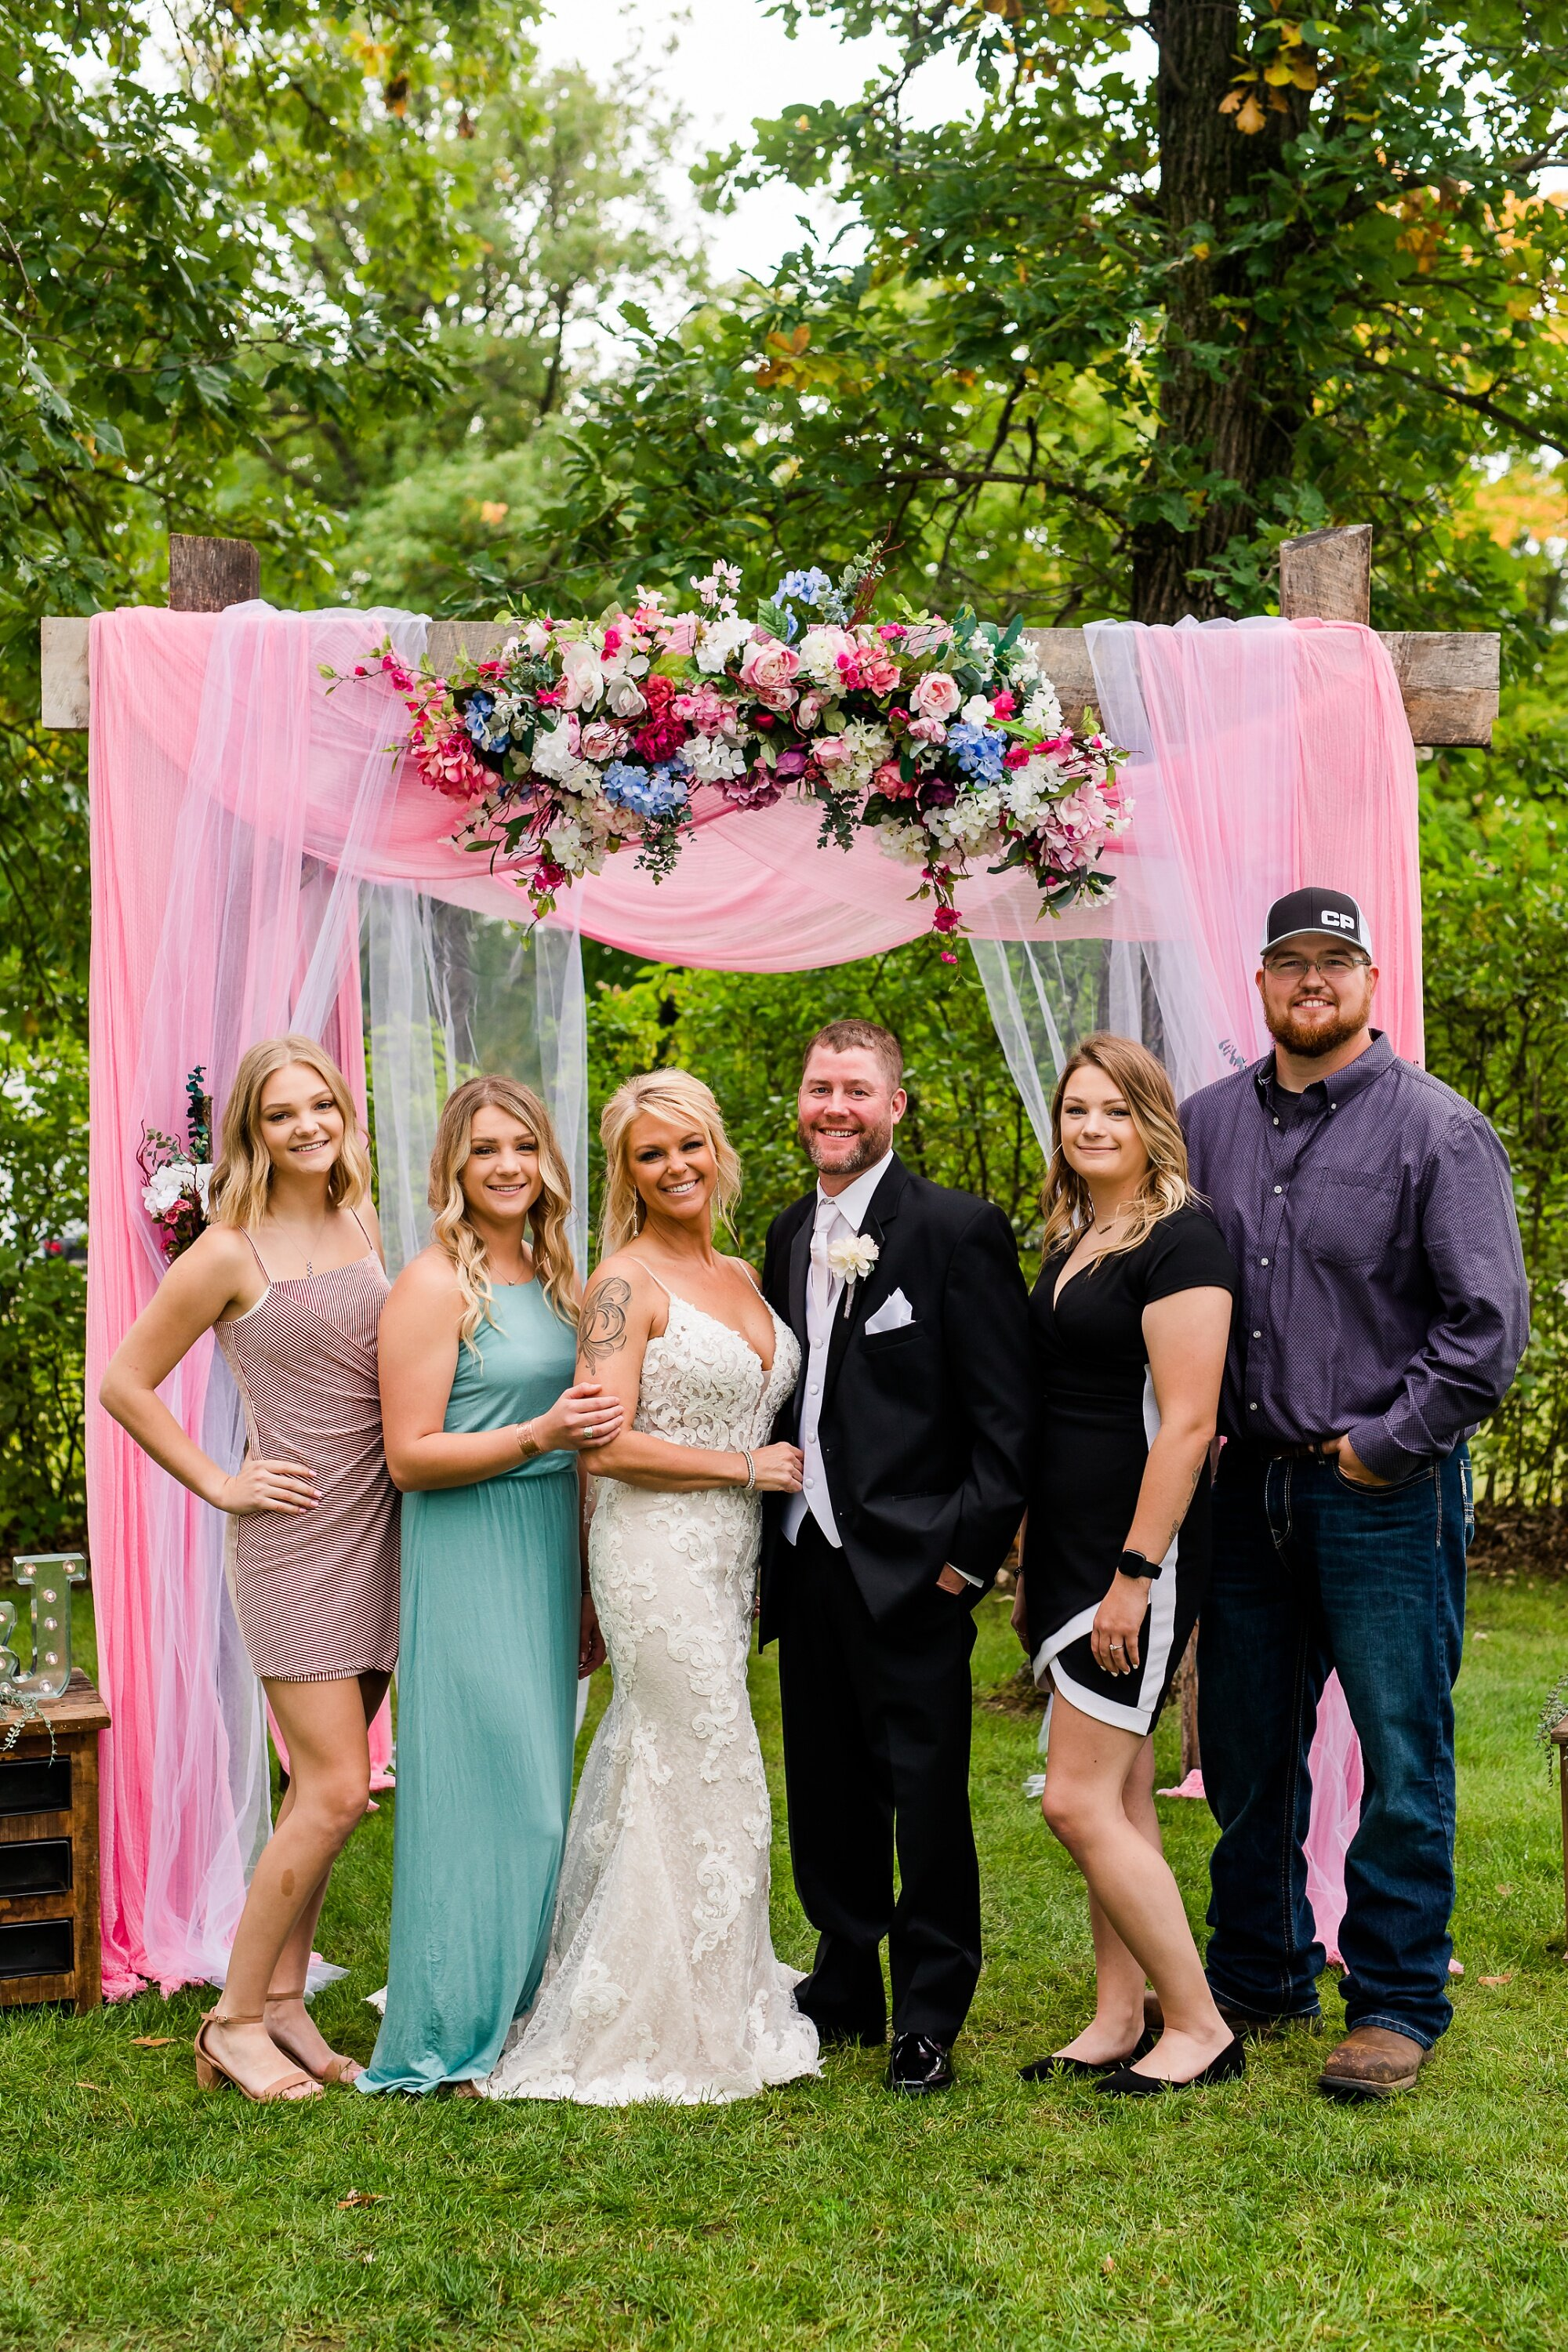 Amber Langerud Photography_Eagle Lake Rustic Styled Outdoor Wedding in Minnesota_6864.jpg